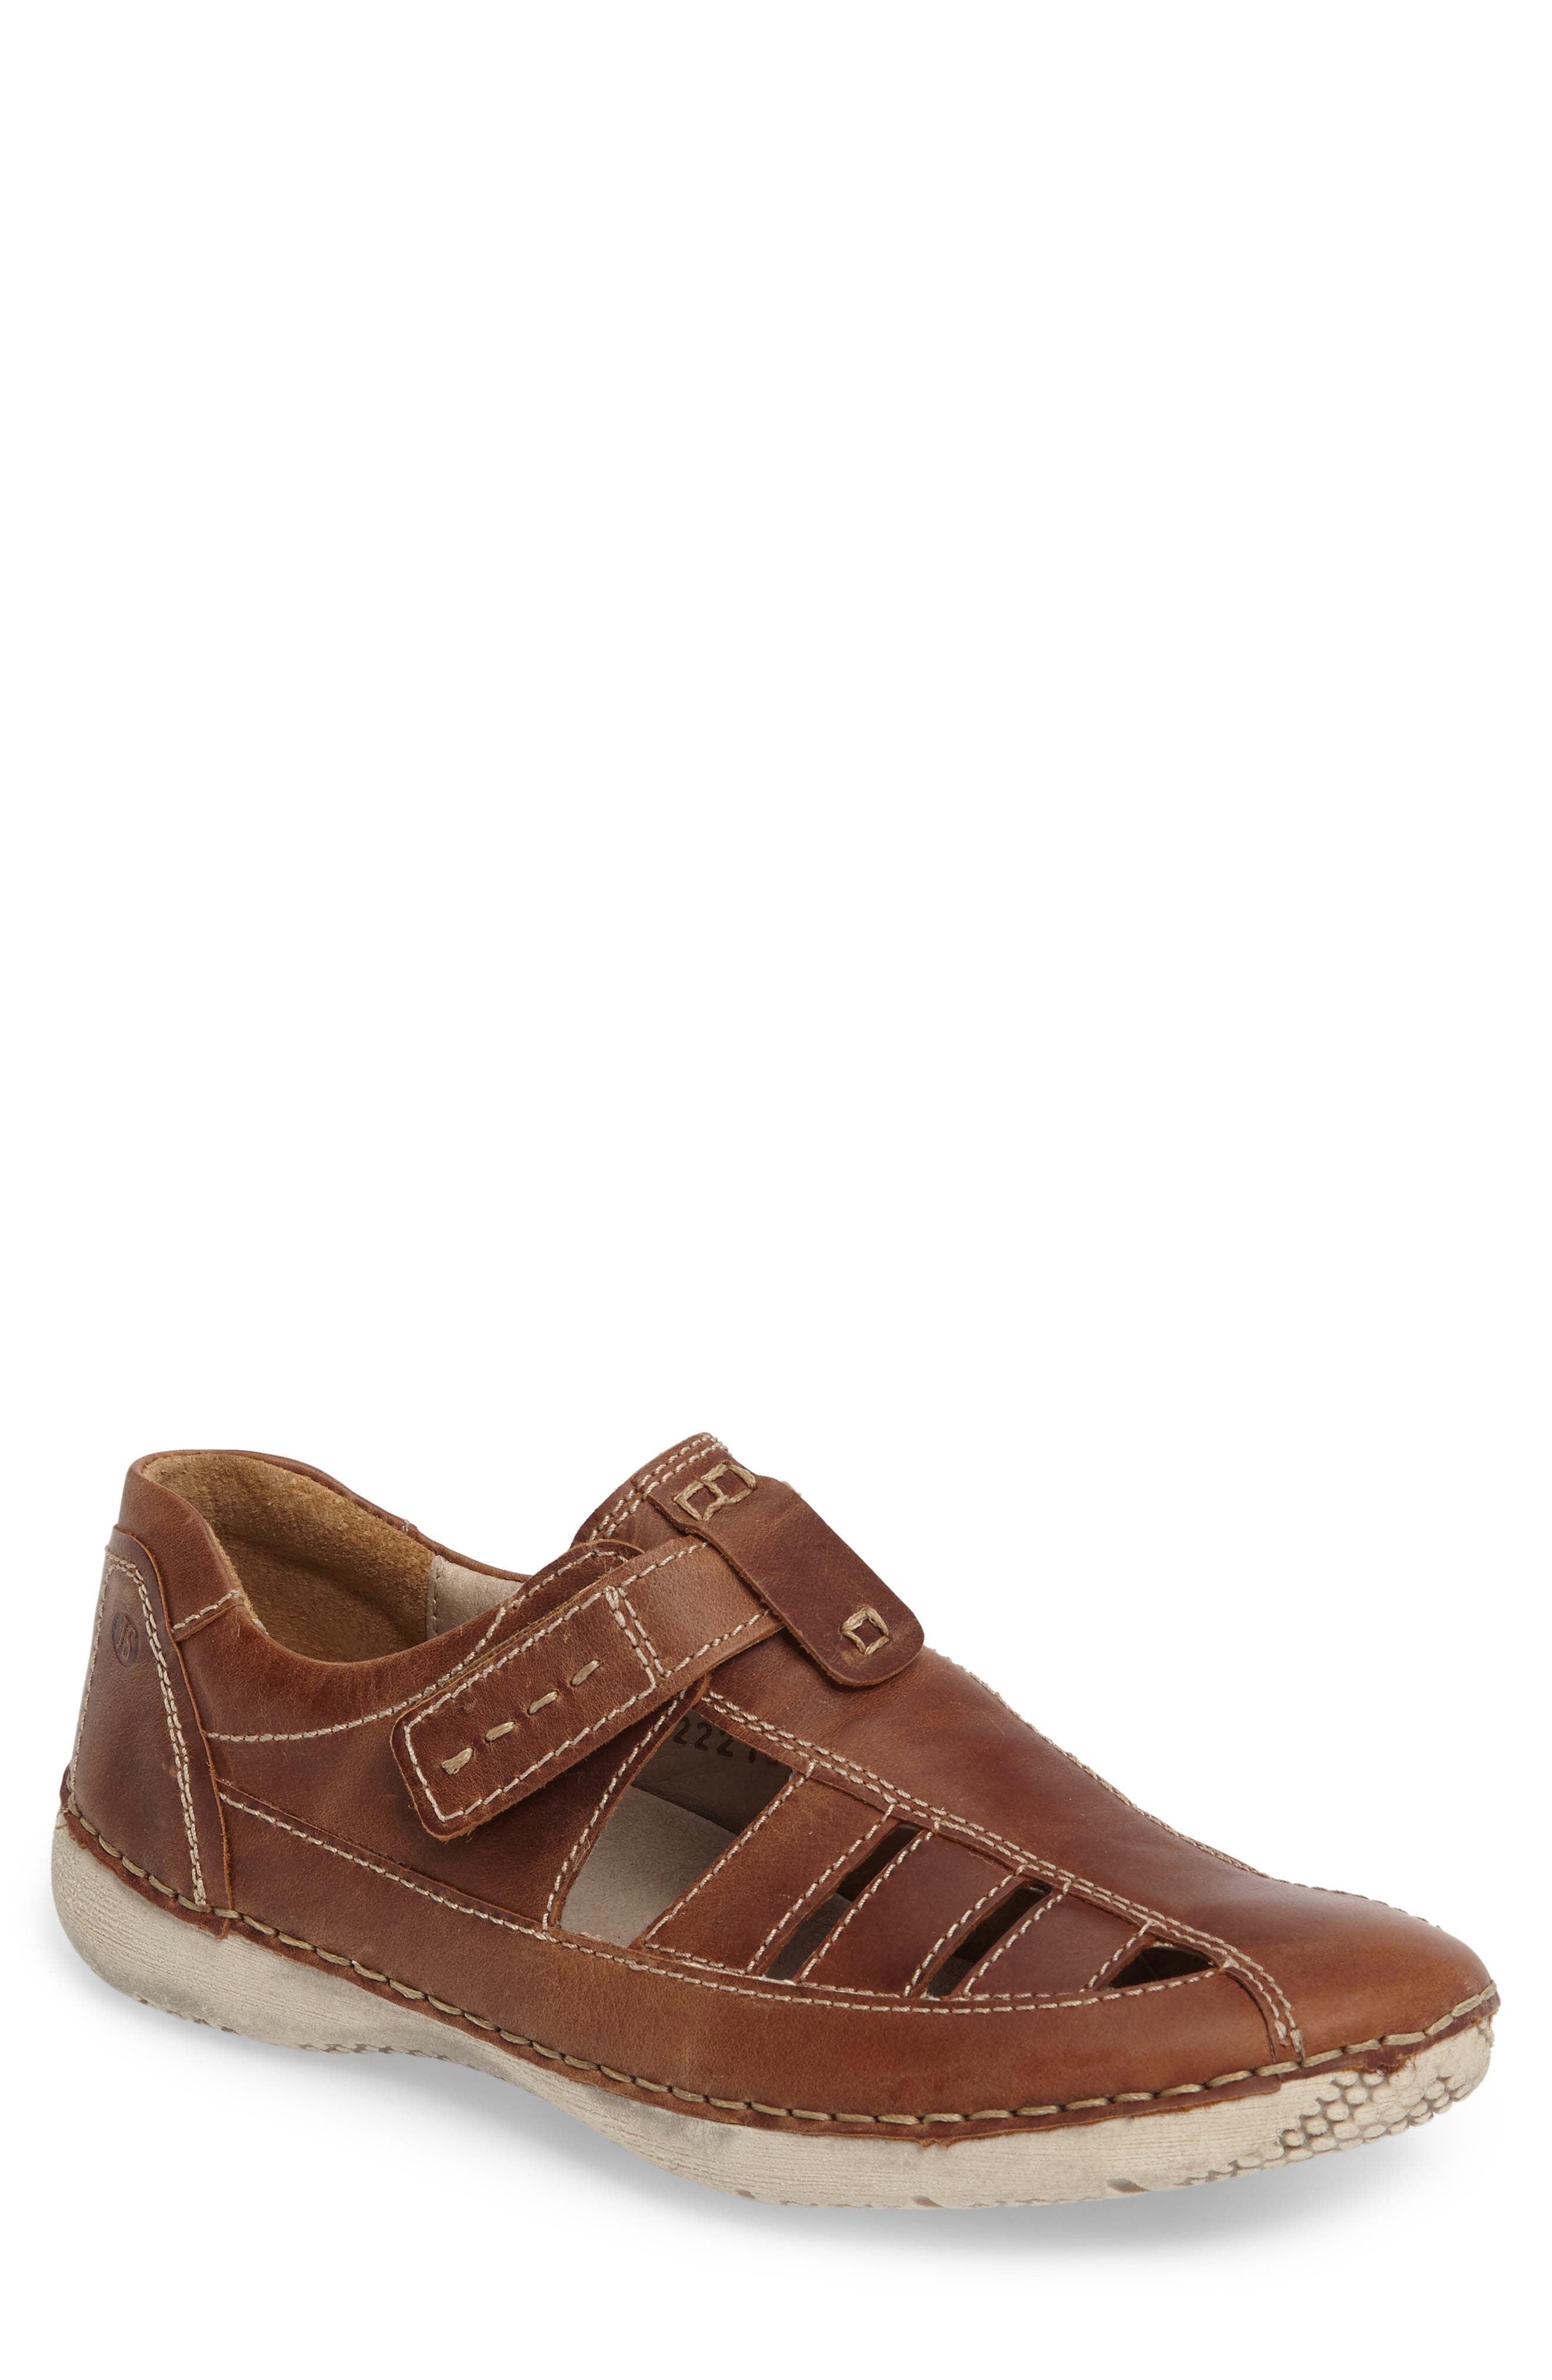 Antje 11 Sneaker,                         Main,                         color, Castagne Leather